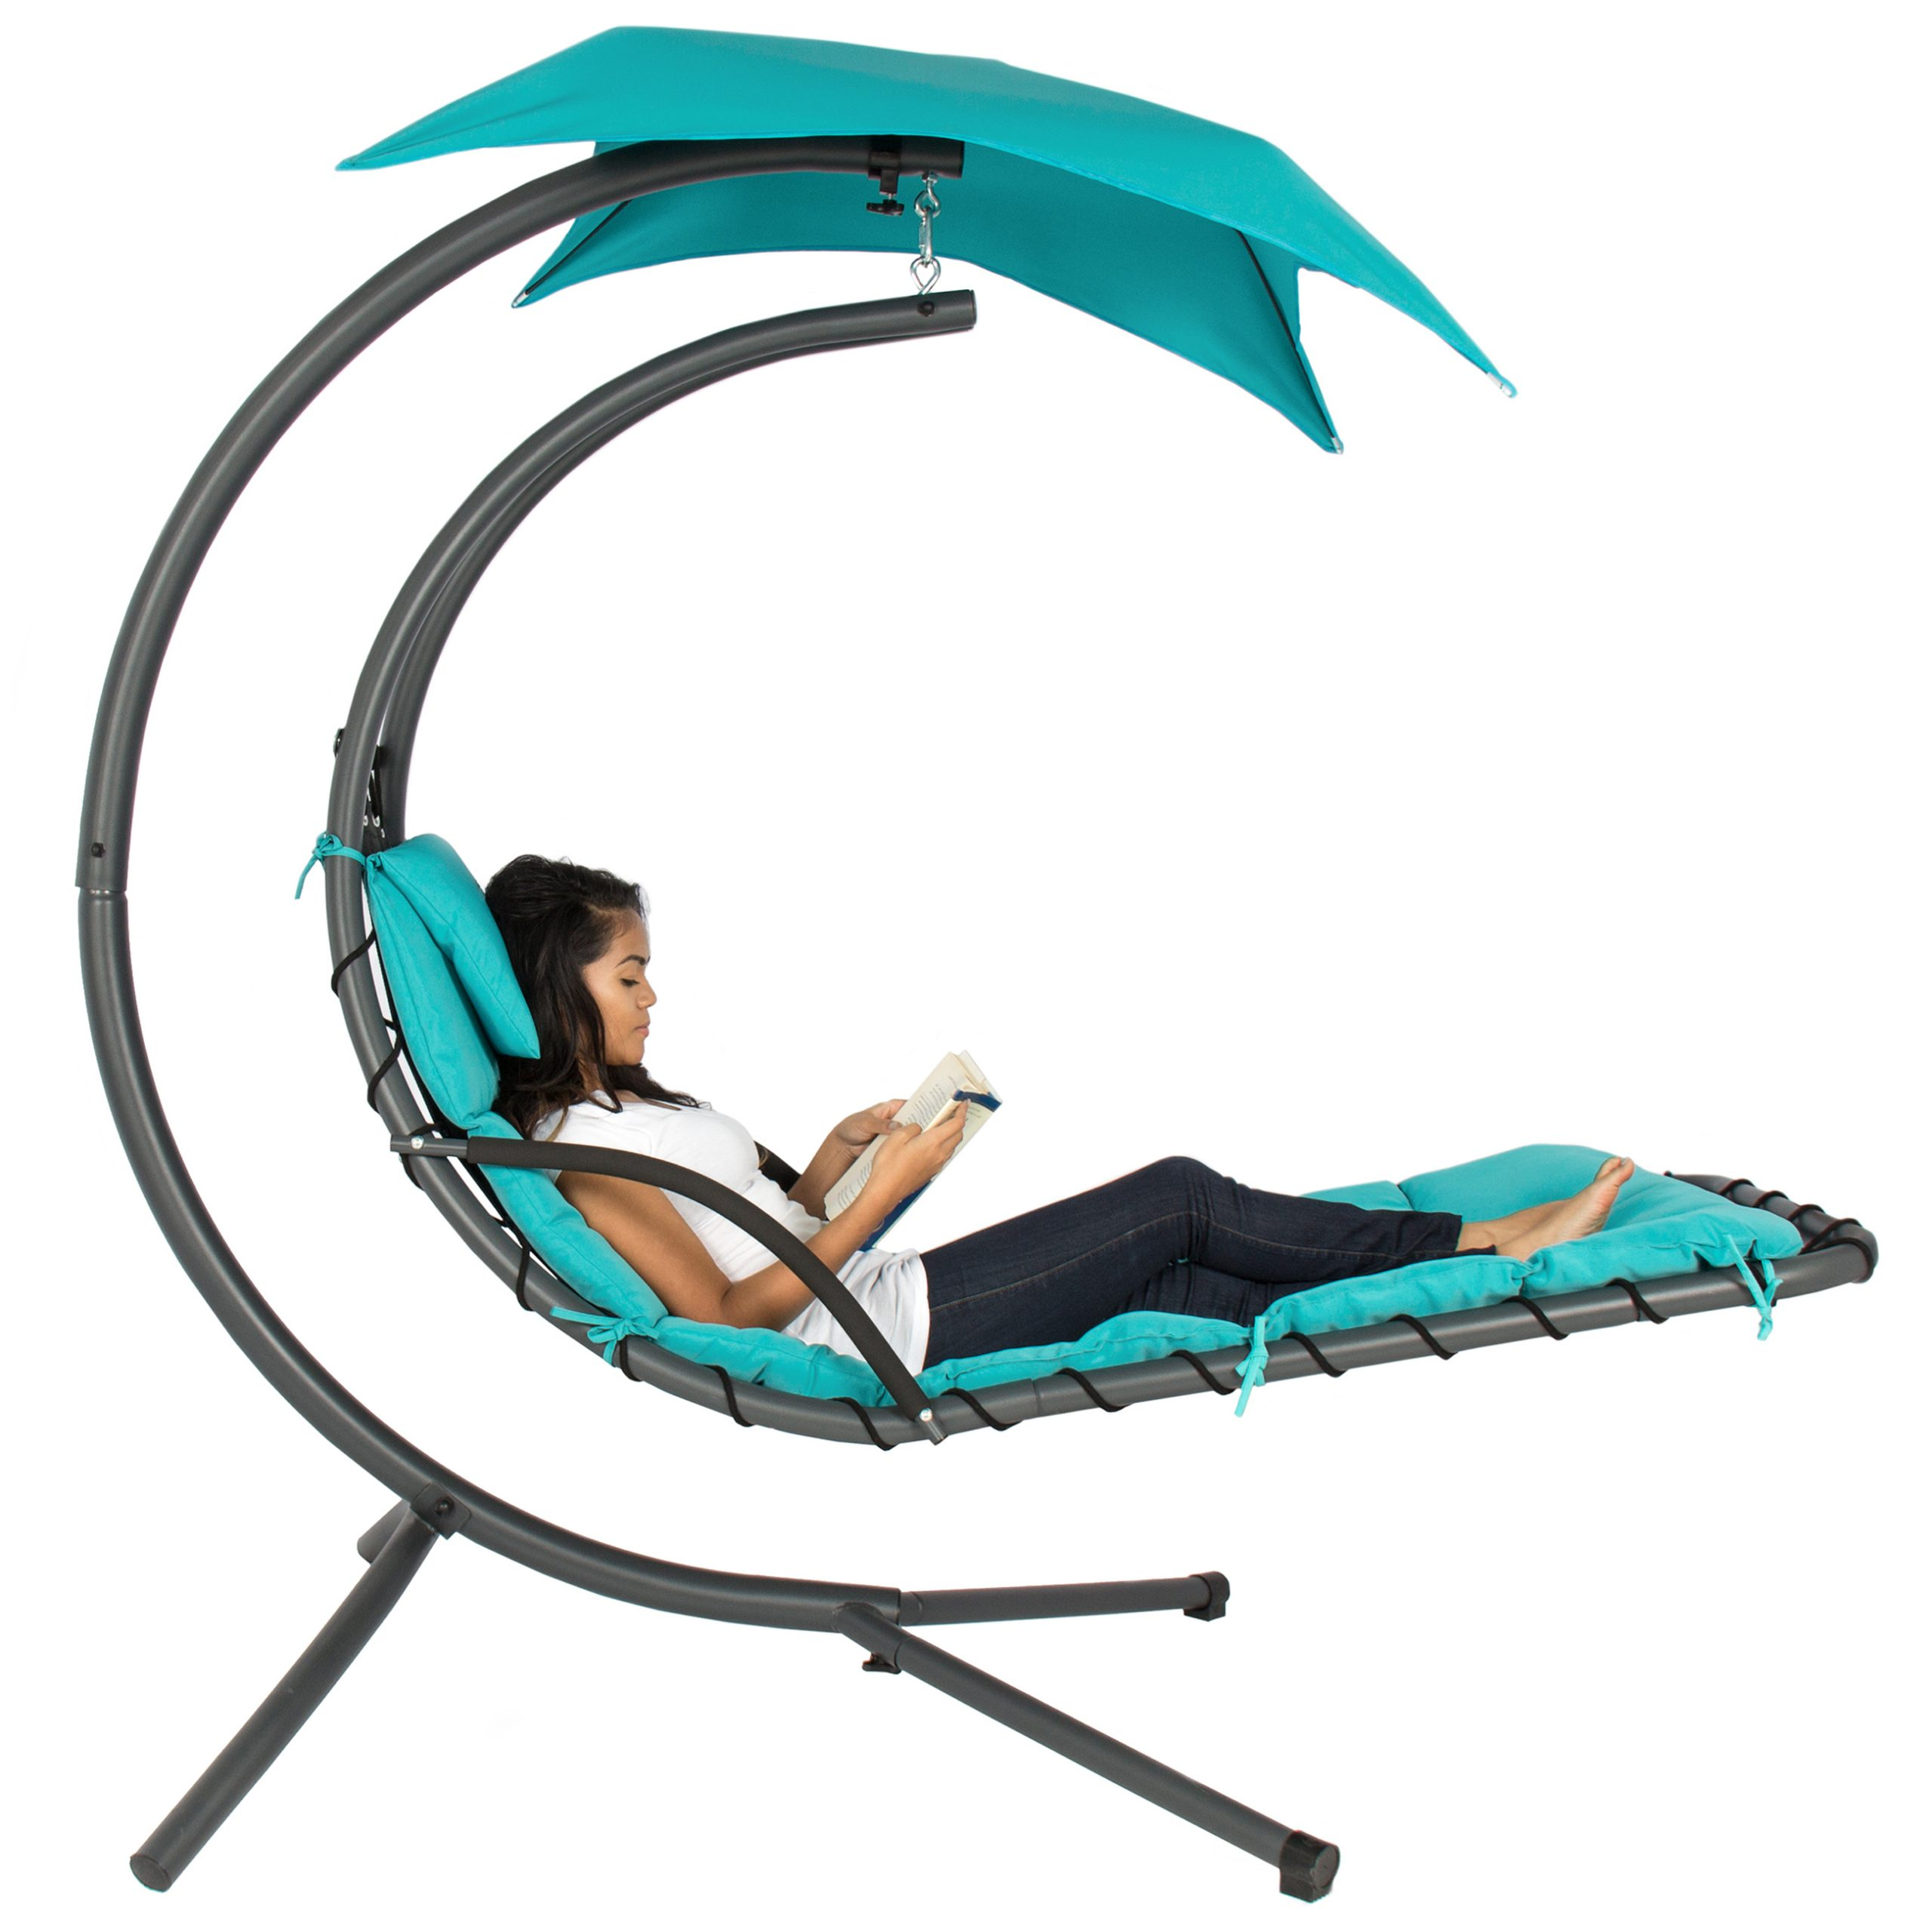 Well Liked Garden Leisure Outdoor Hammock Patio Canopy Rocking Chairs Pertaining To Best Choice Products Hanging Curved Chaise Lounge Chair Swing For Backyard, Patio W/ Pillow, Canopy, Stand – Teal (View 25 of 25)